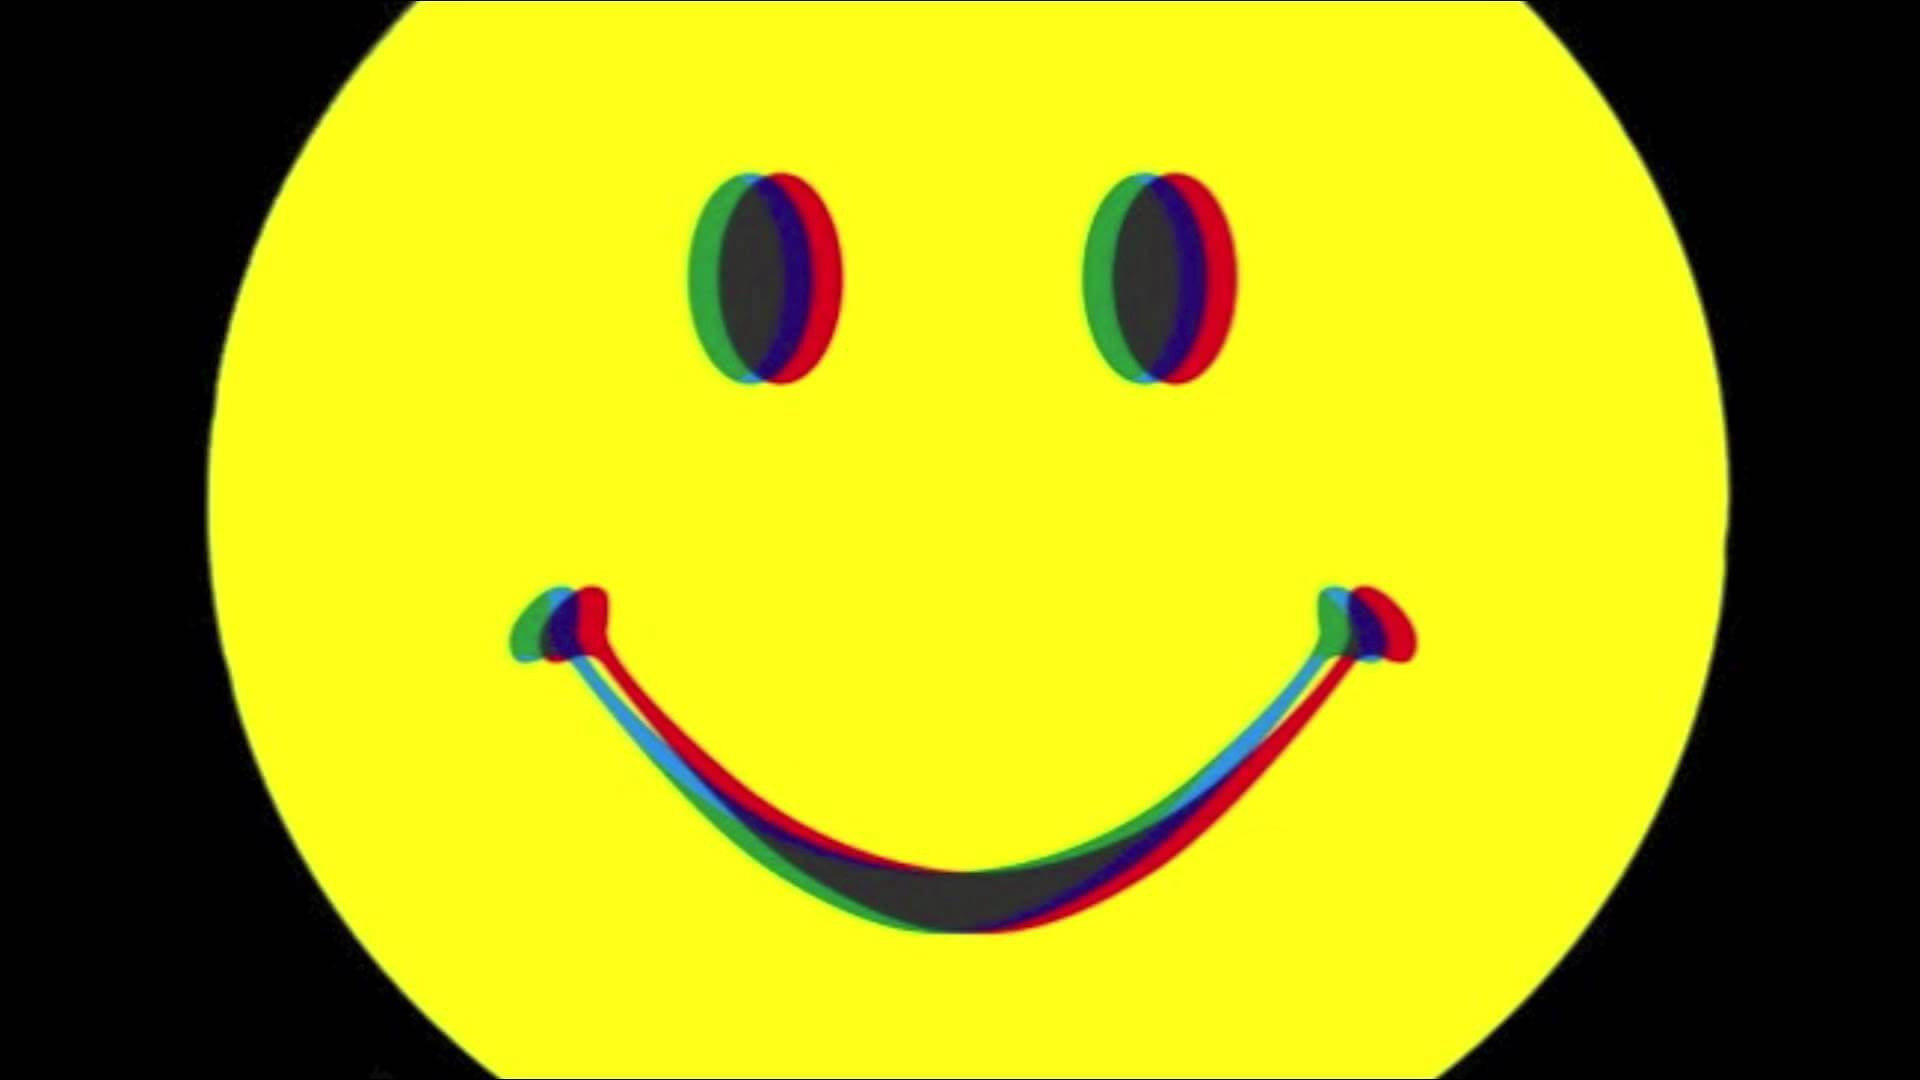 Acid History How The Smiley Became The Iconic Face Of Rave Telekom Electronic Beats